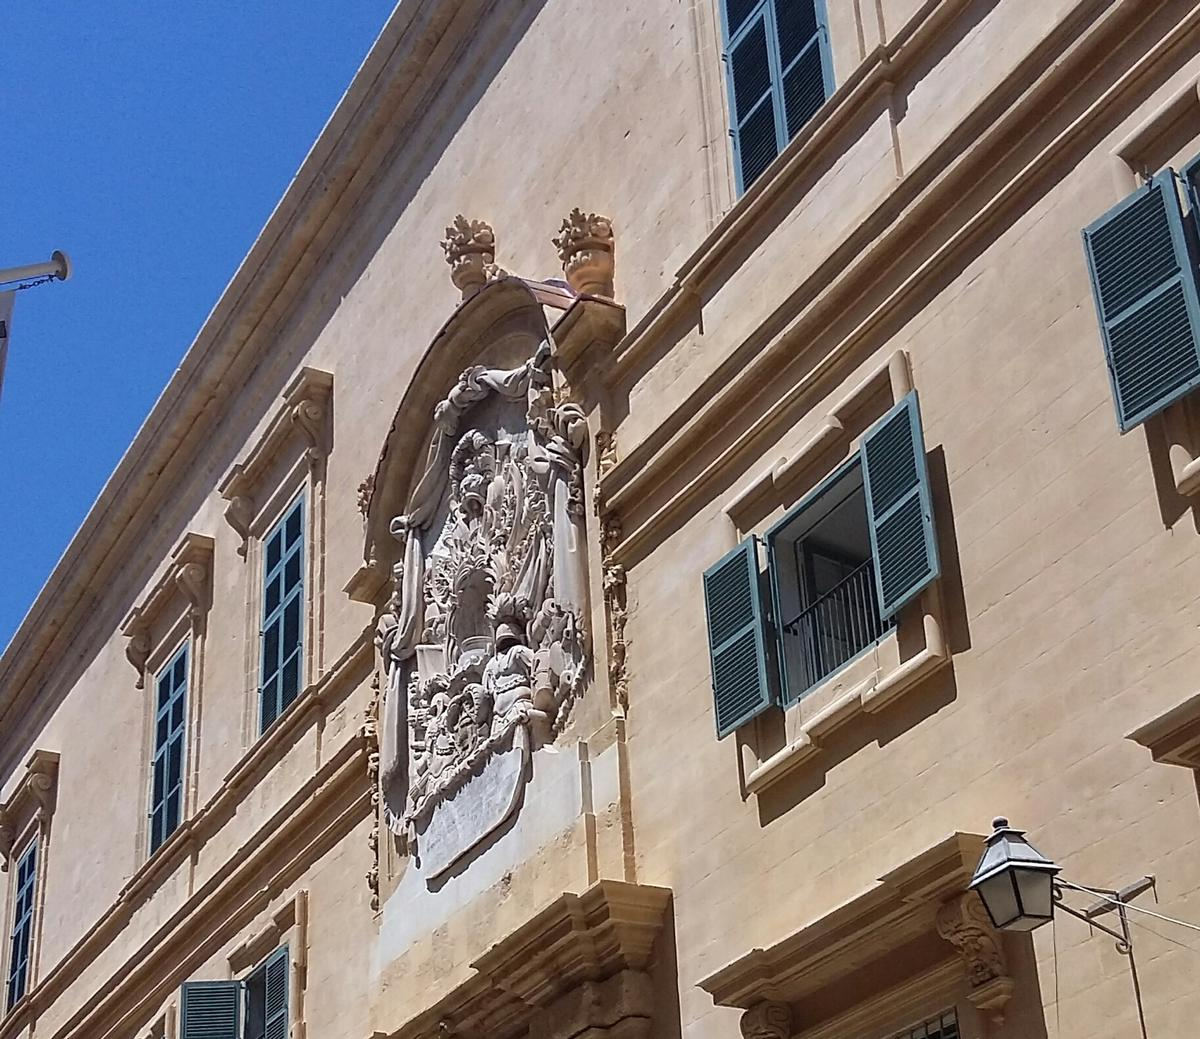 Part of the recently-renovated entrance to the Auberge D'Italie in Valletta, home of the MUZA art museum